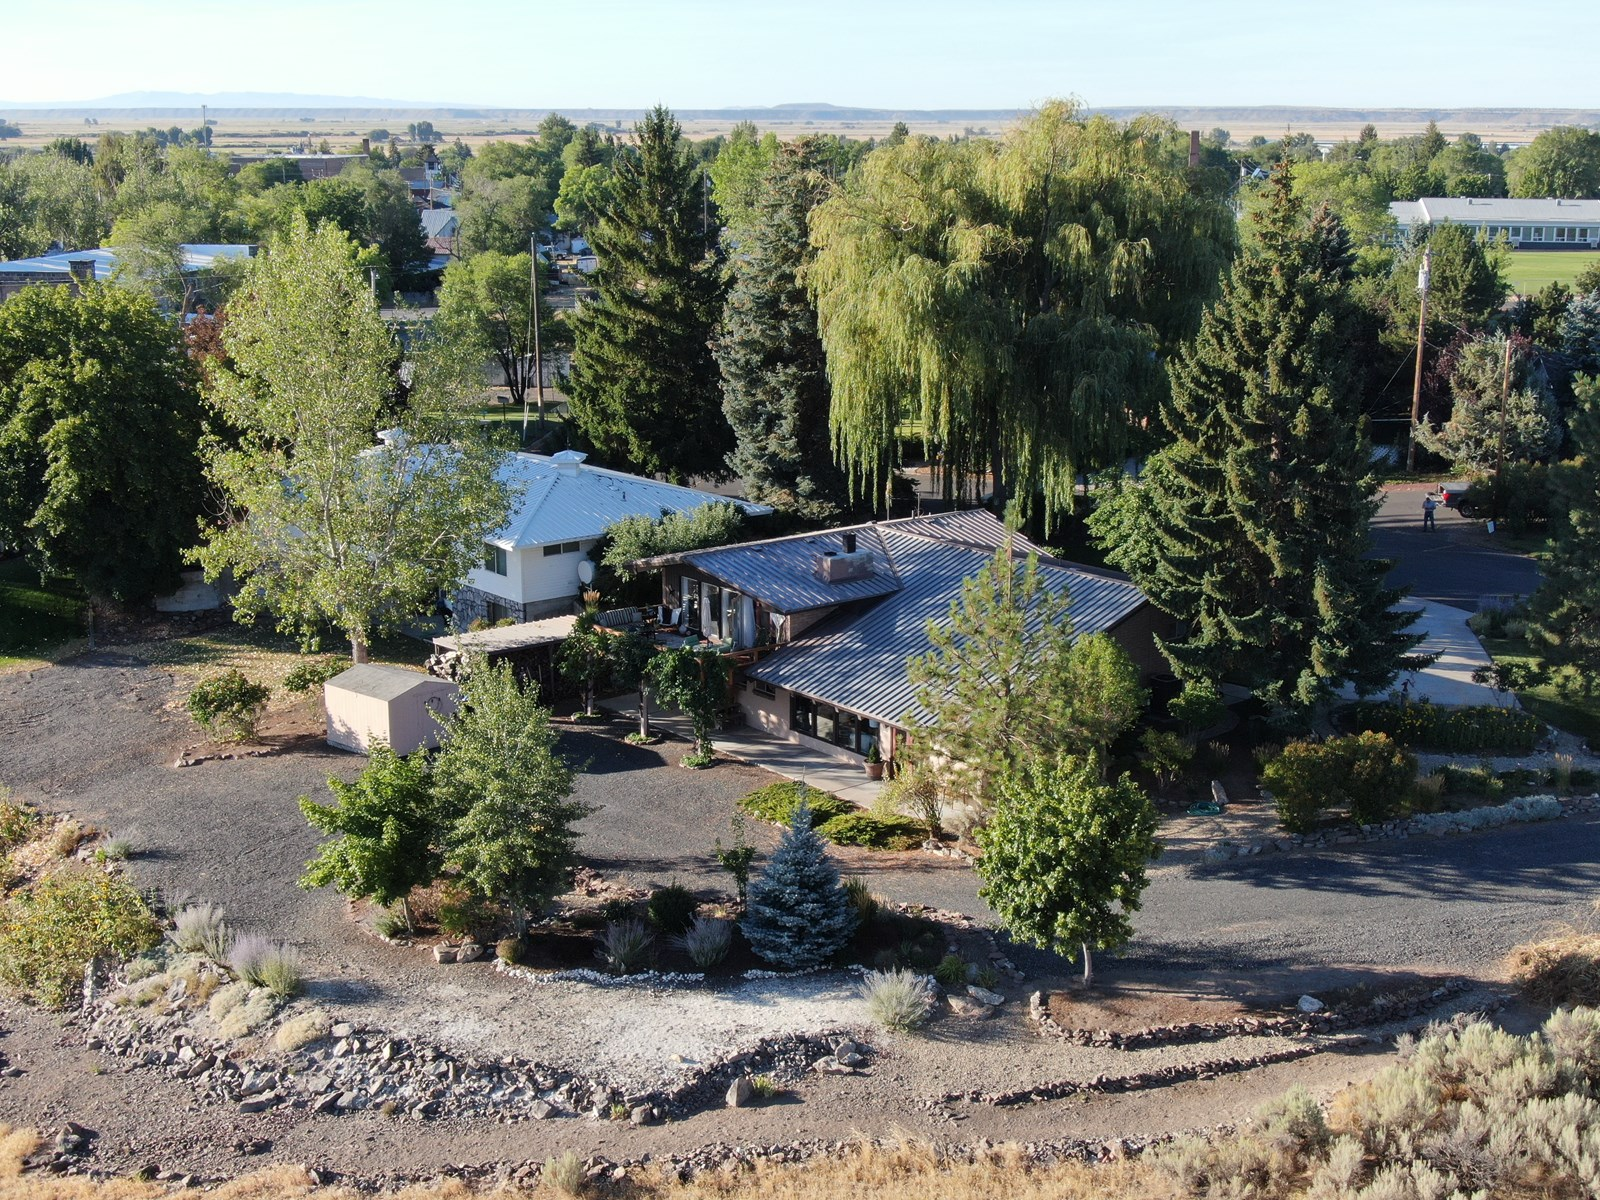 CUSTOM 4 BDRM HOME - ON HILL IN BURNS - GREAT VIEWS!!